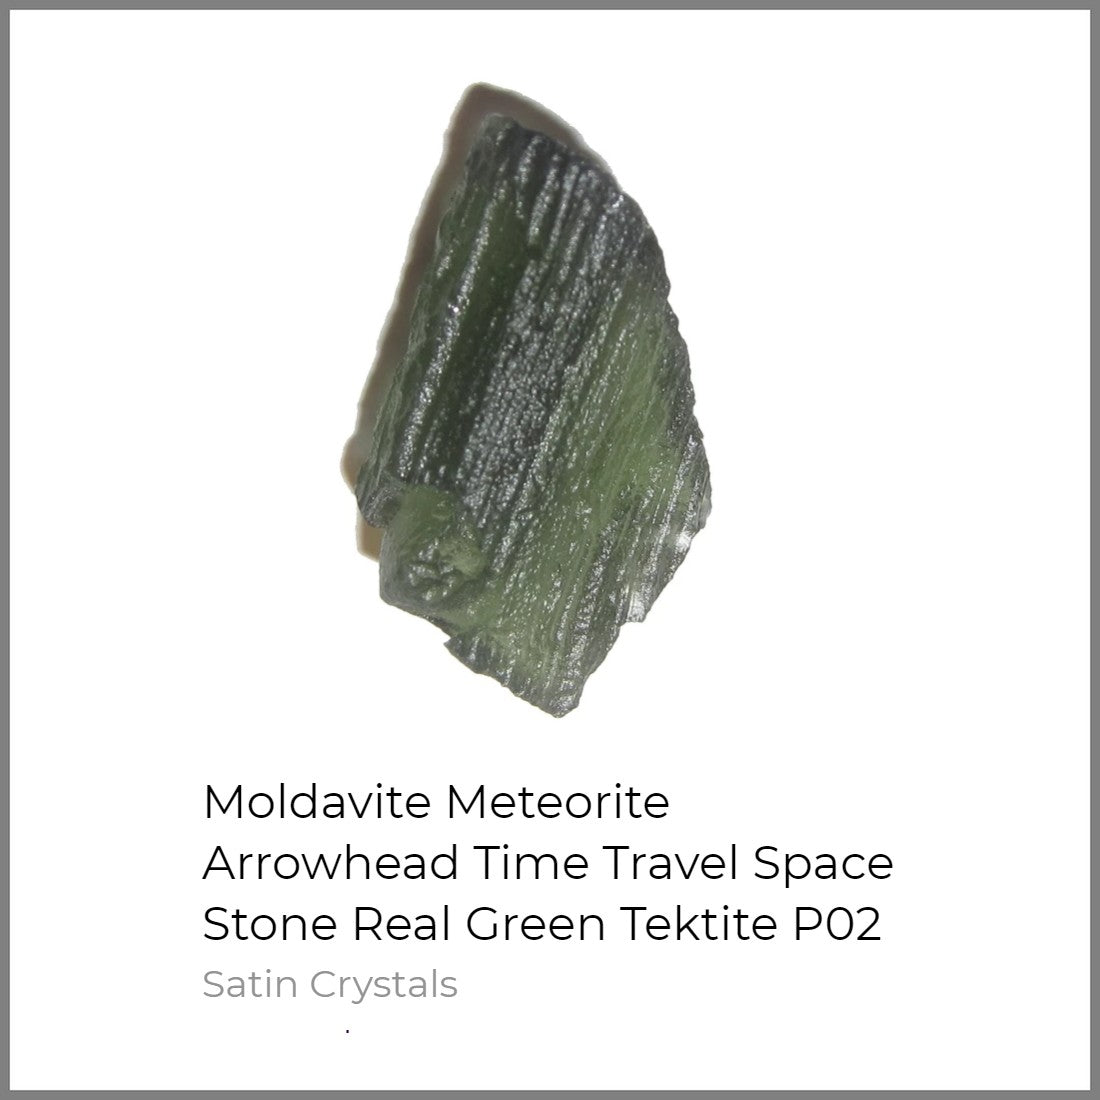 moldavite meteorite for sale